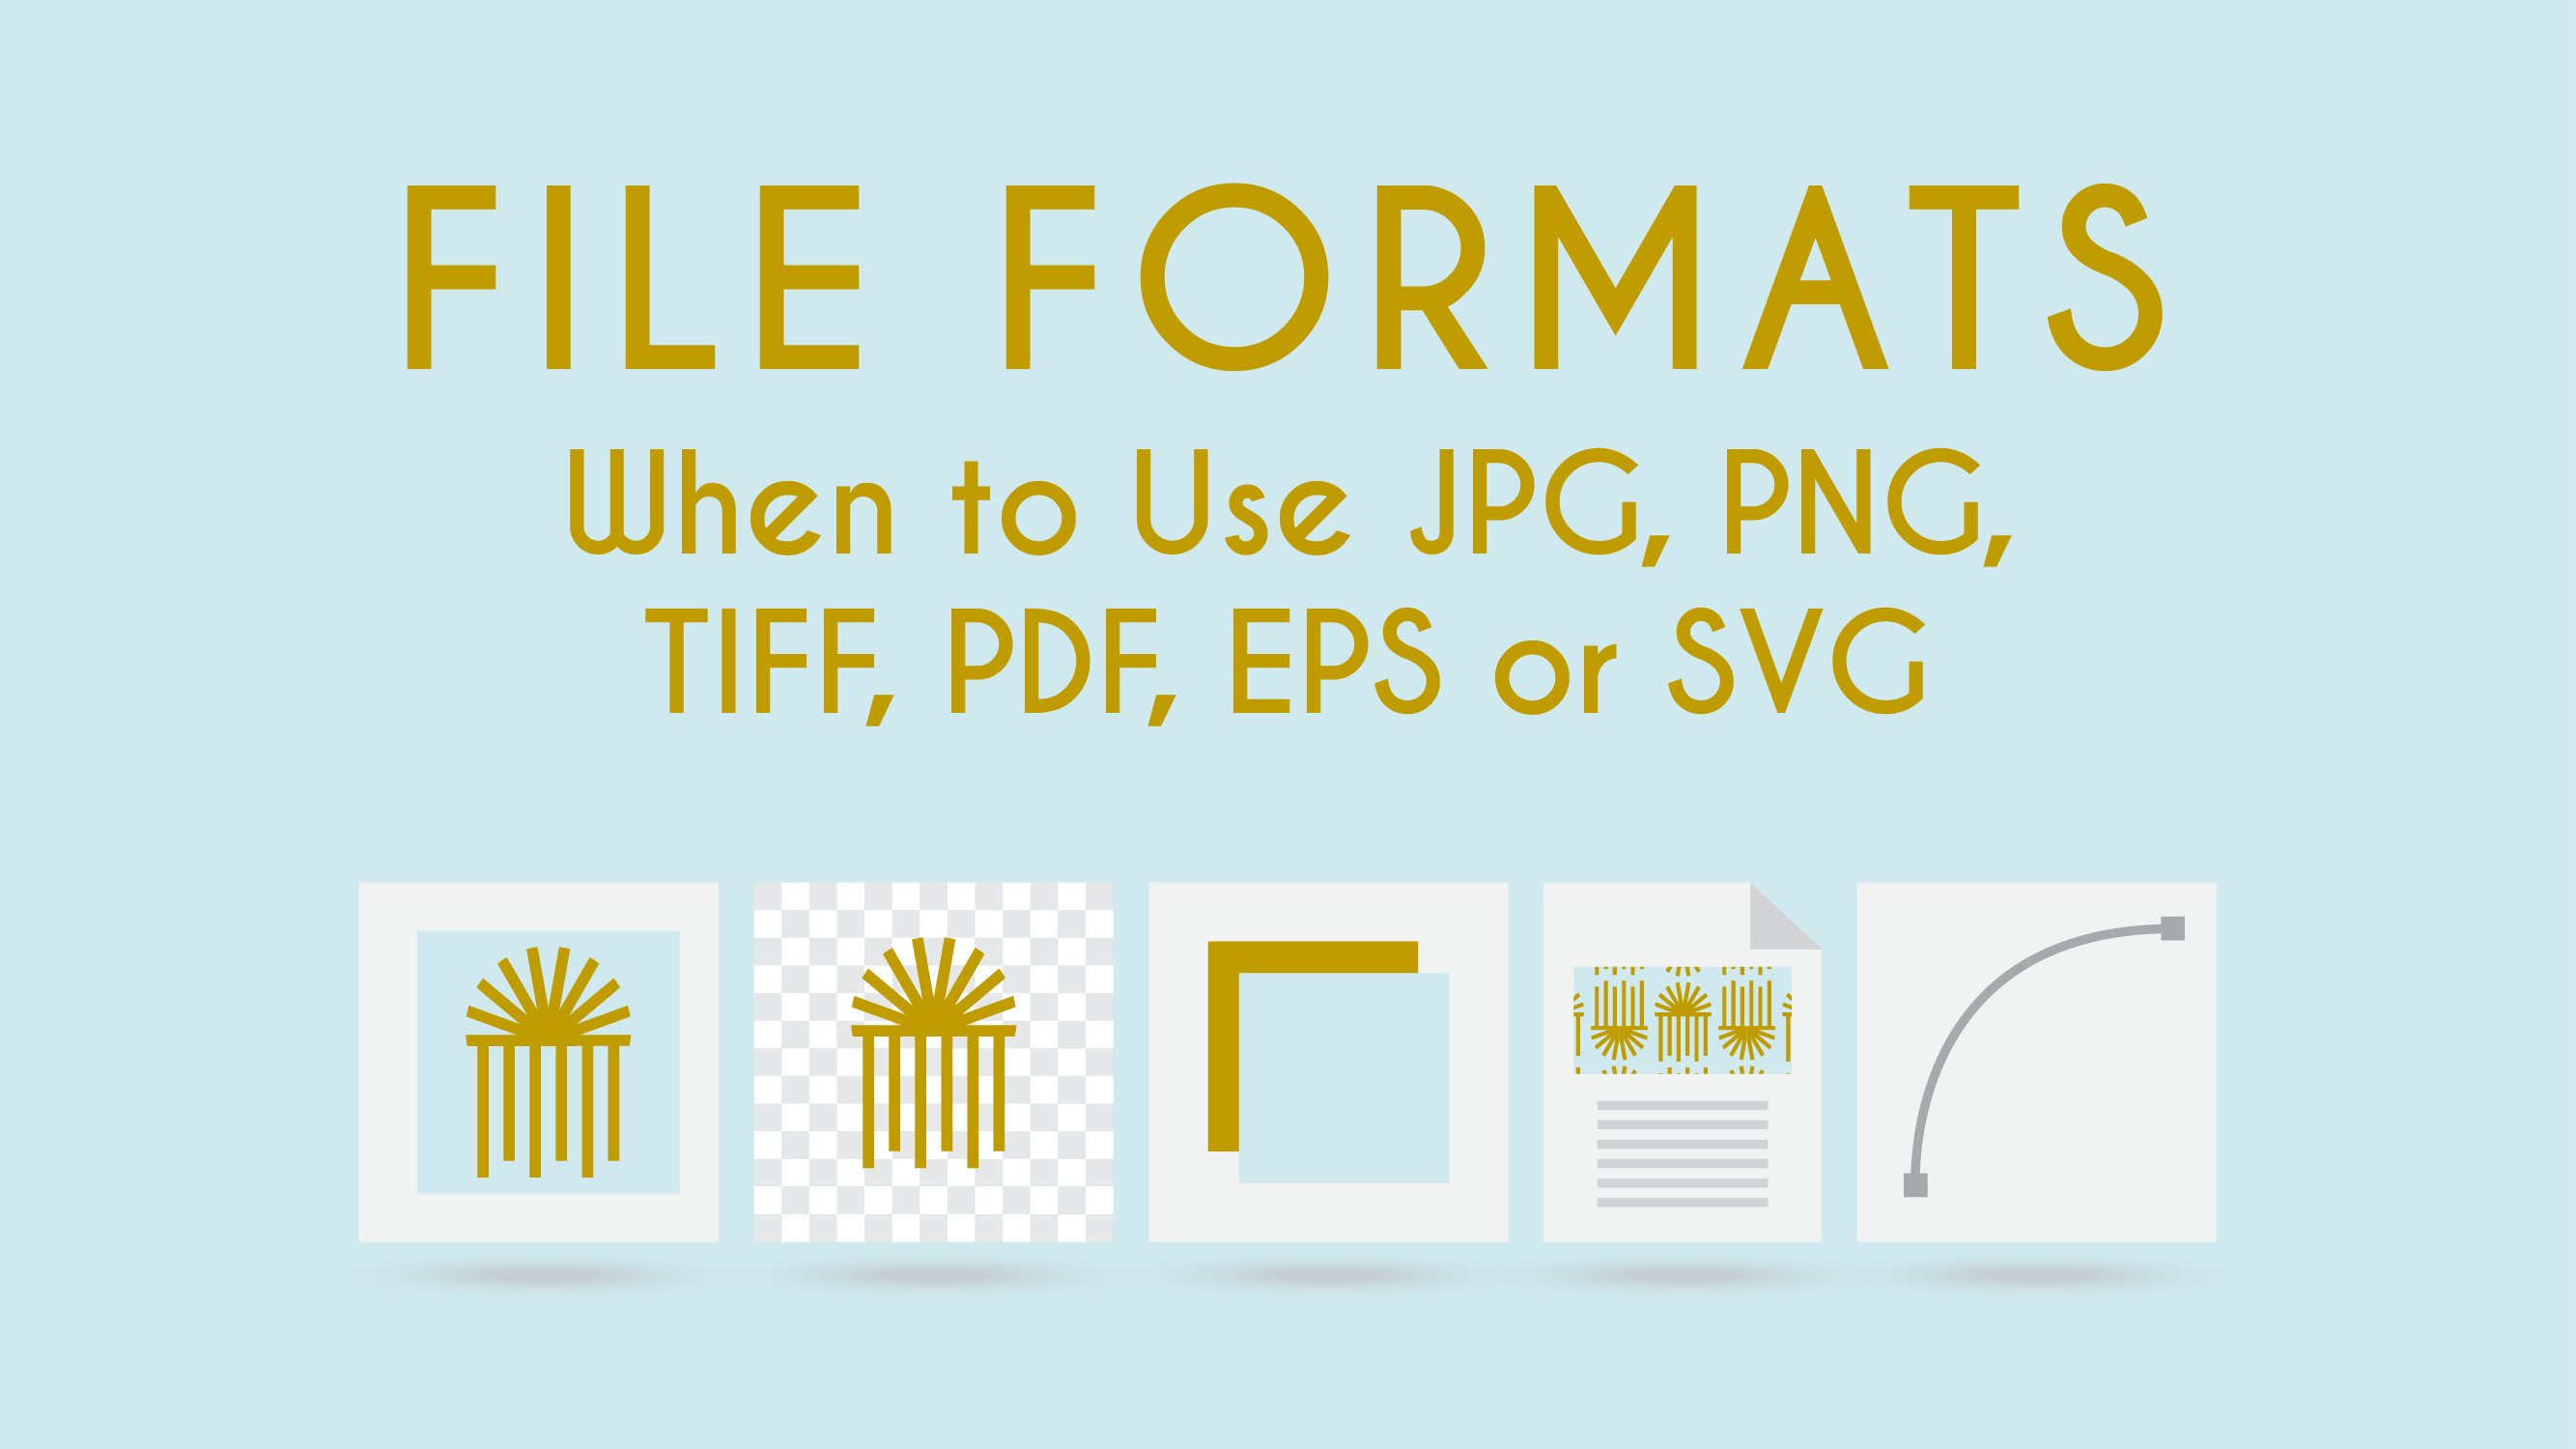 File Formats: When to Use JPG, PNG, TIFF, PDF, EPS or SVG